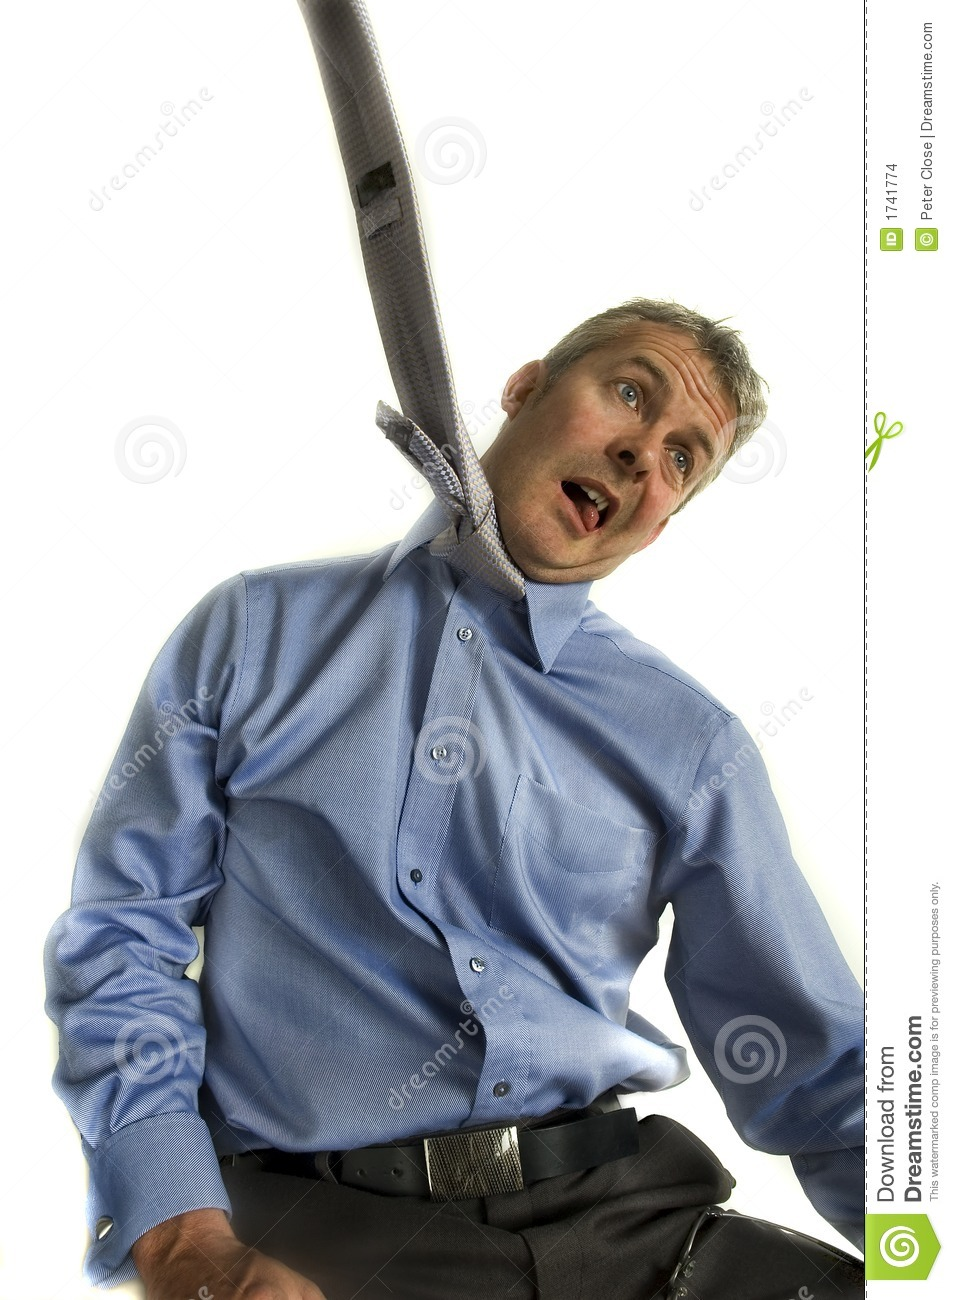 Business Man Hanging From Tie Stock Images - Image: 1741774